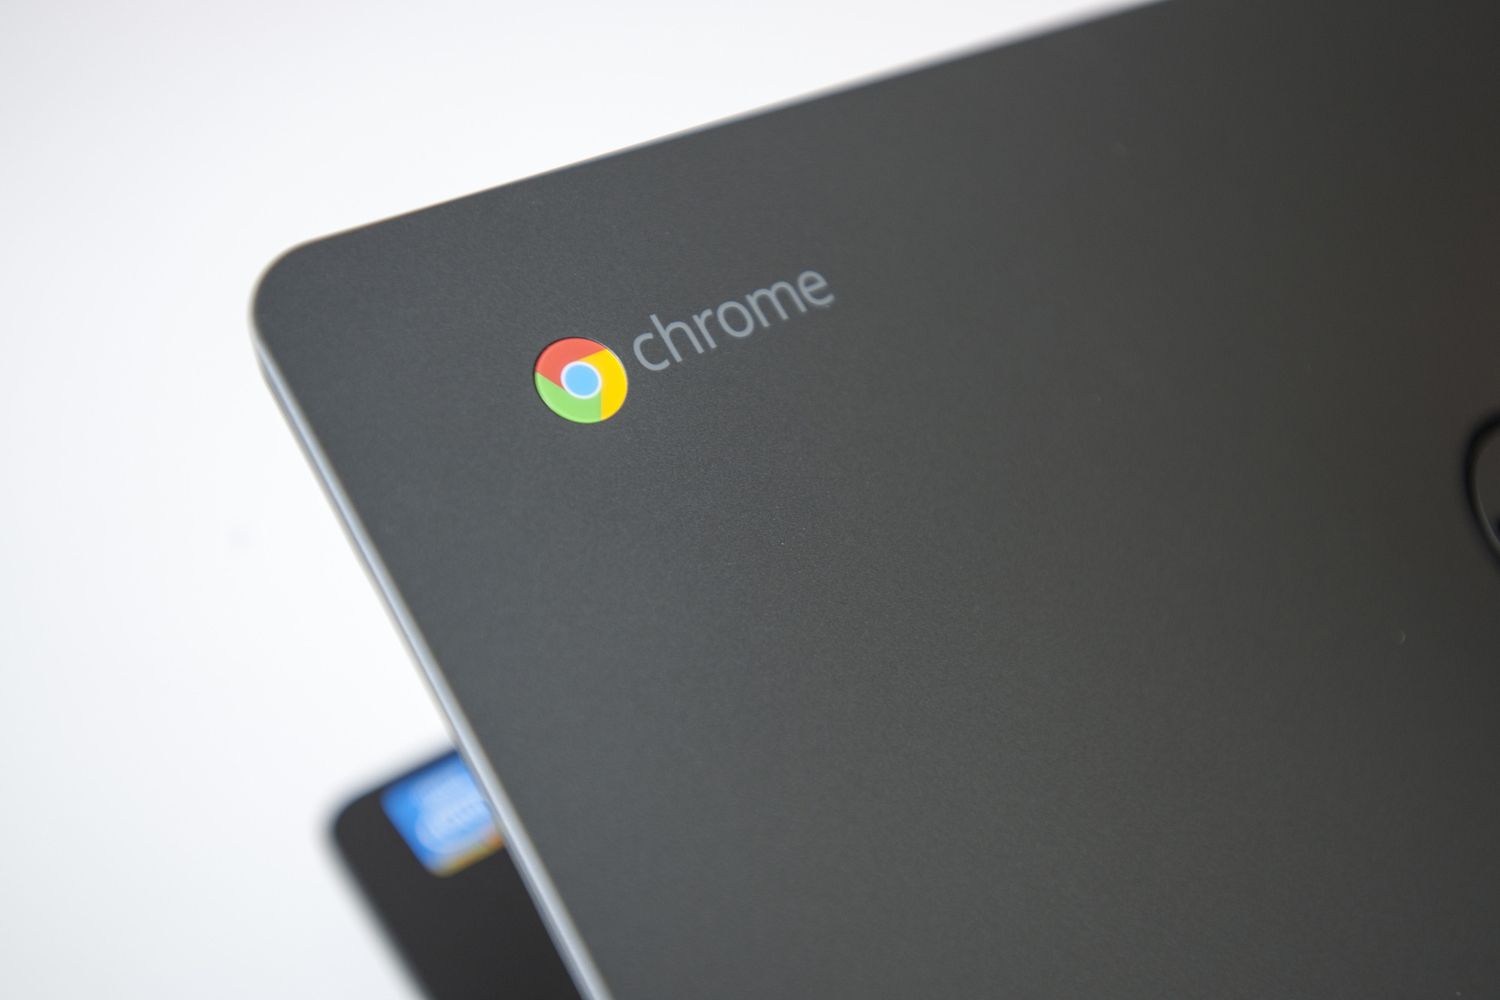 The Newest Chromebook Within Our Reach